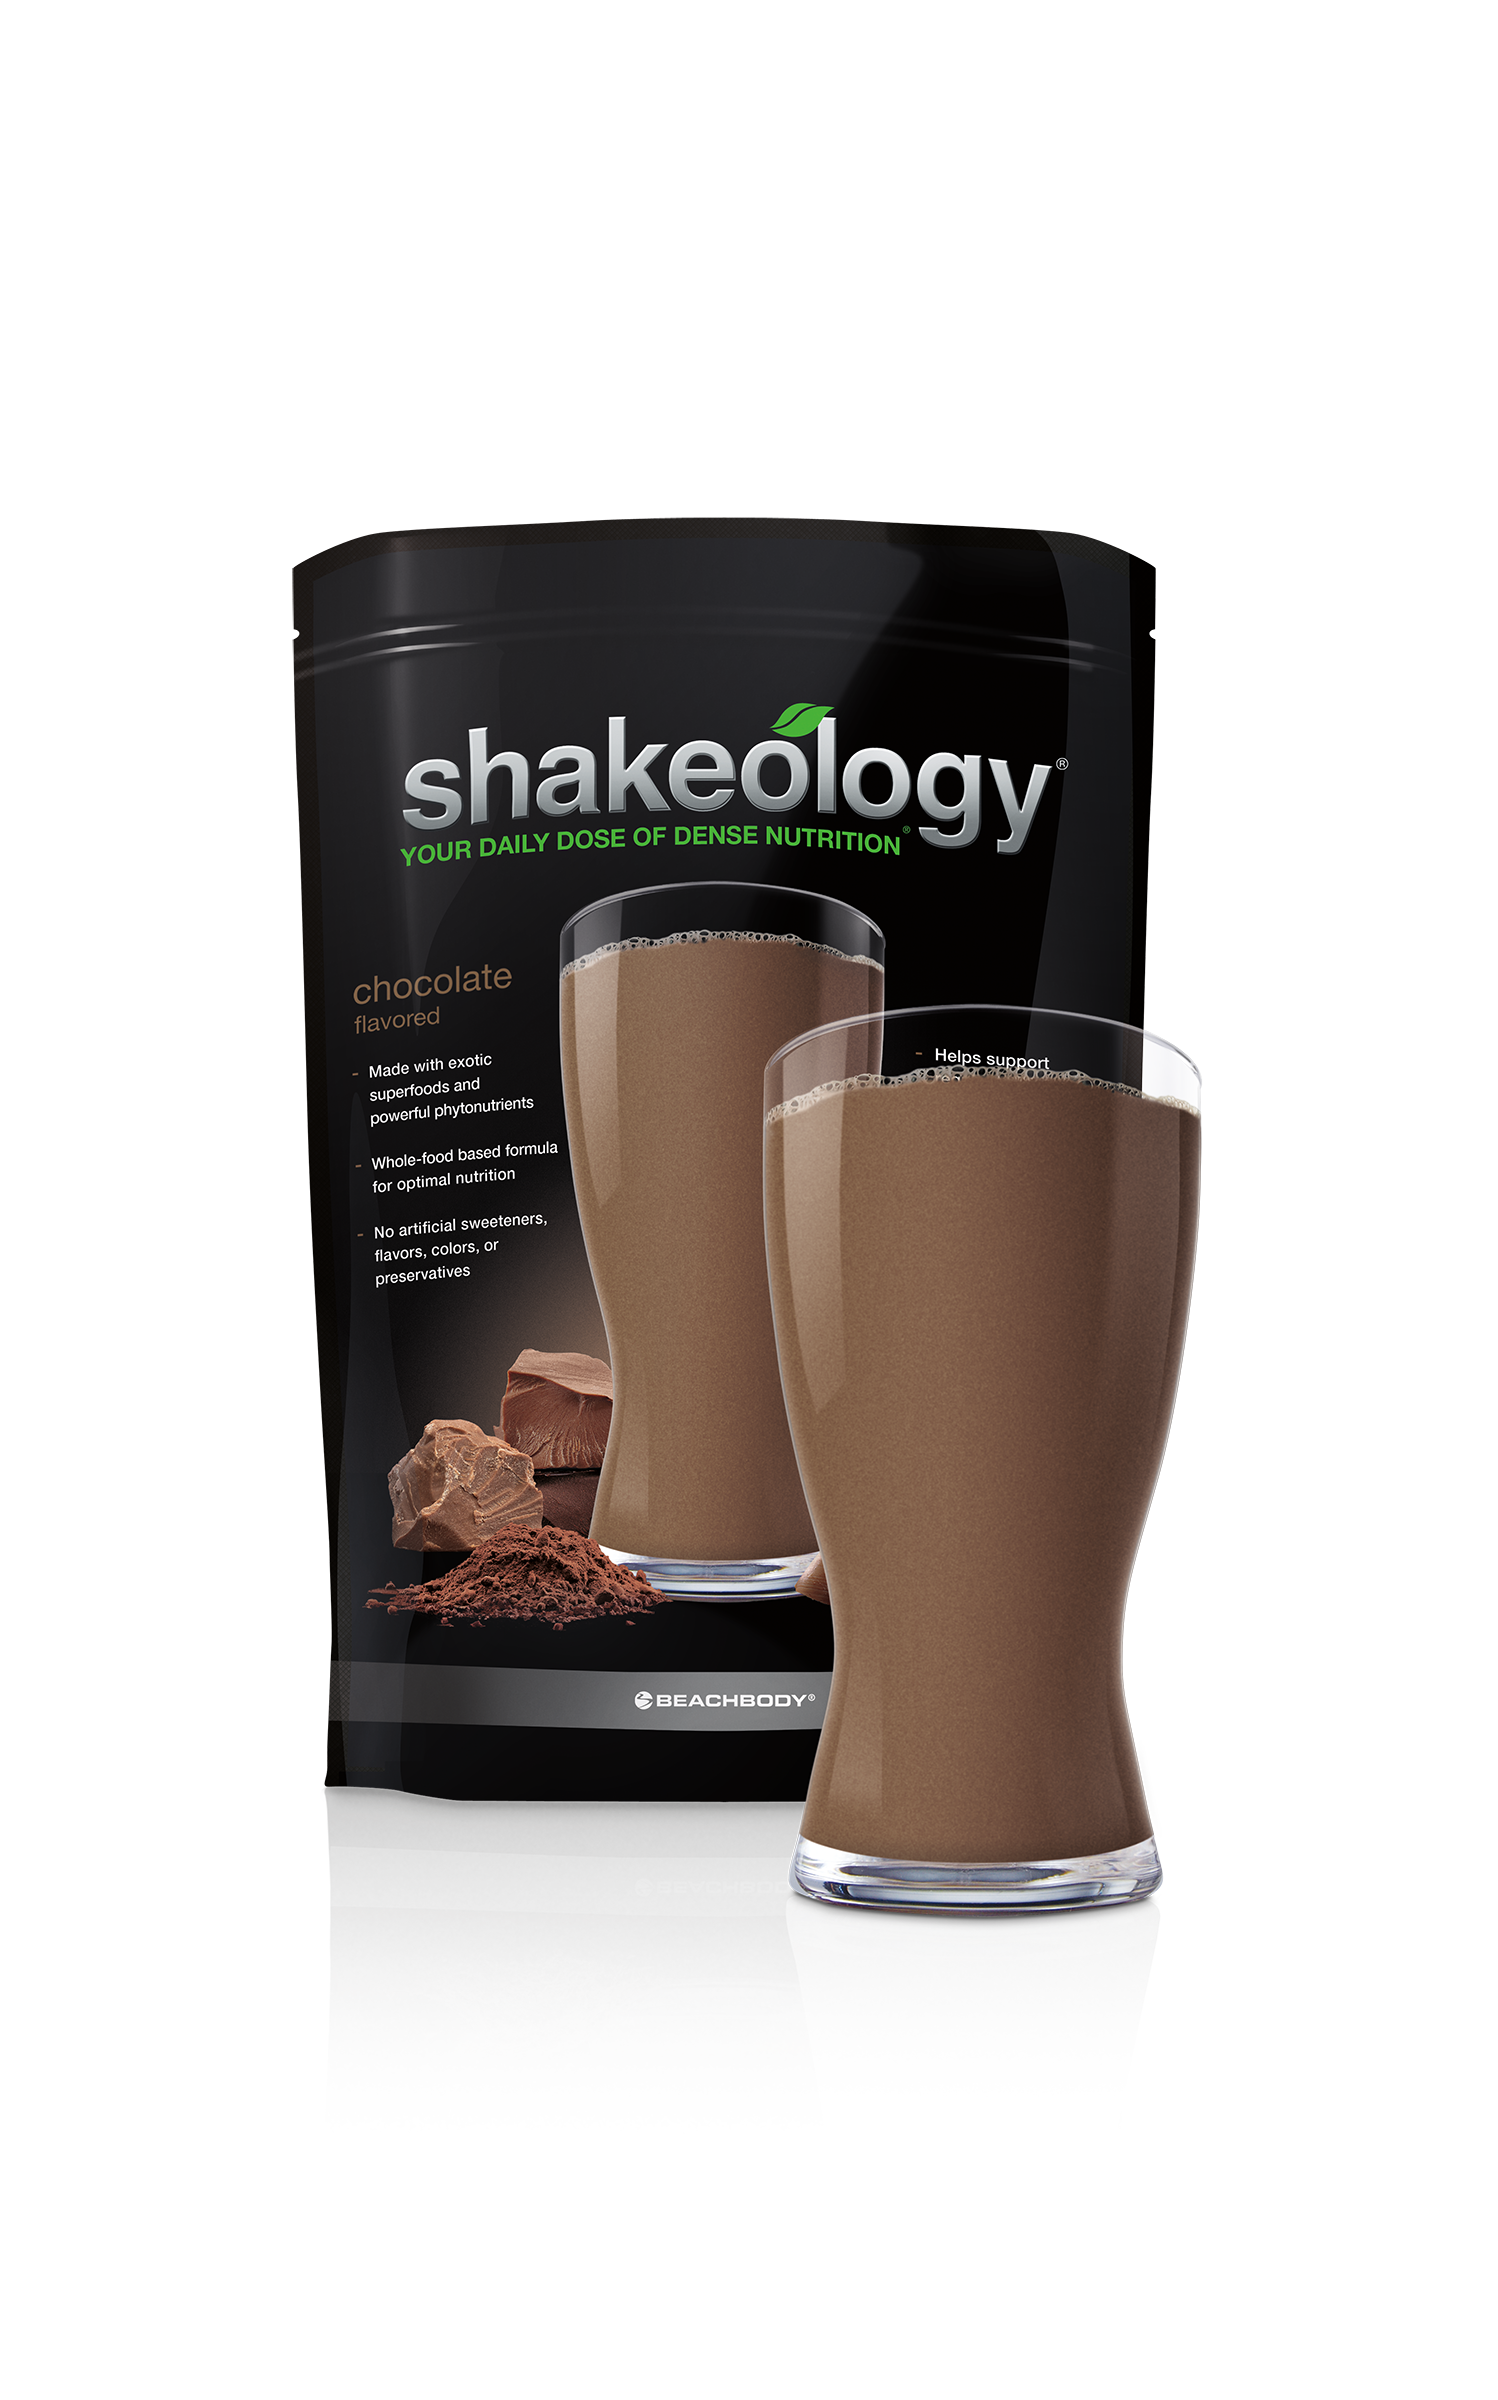 Shakeology-Bag-Chocolate_w18_with_Reflection_and_Glass_March_2017.png